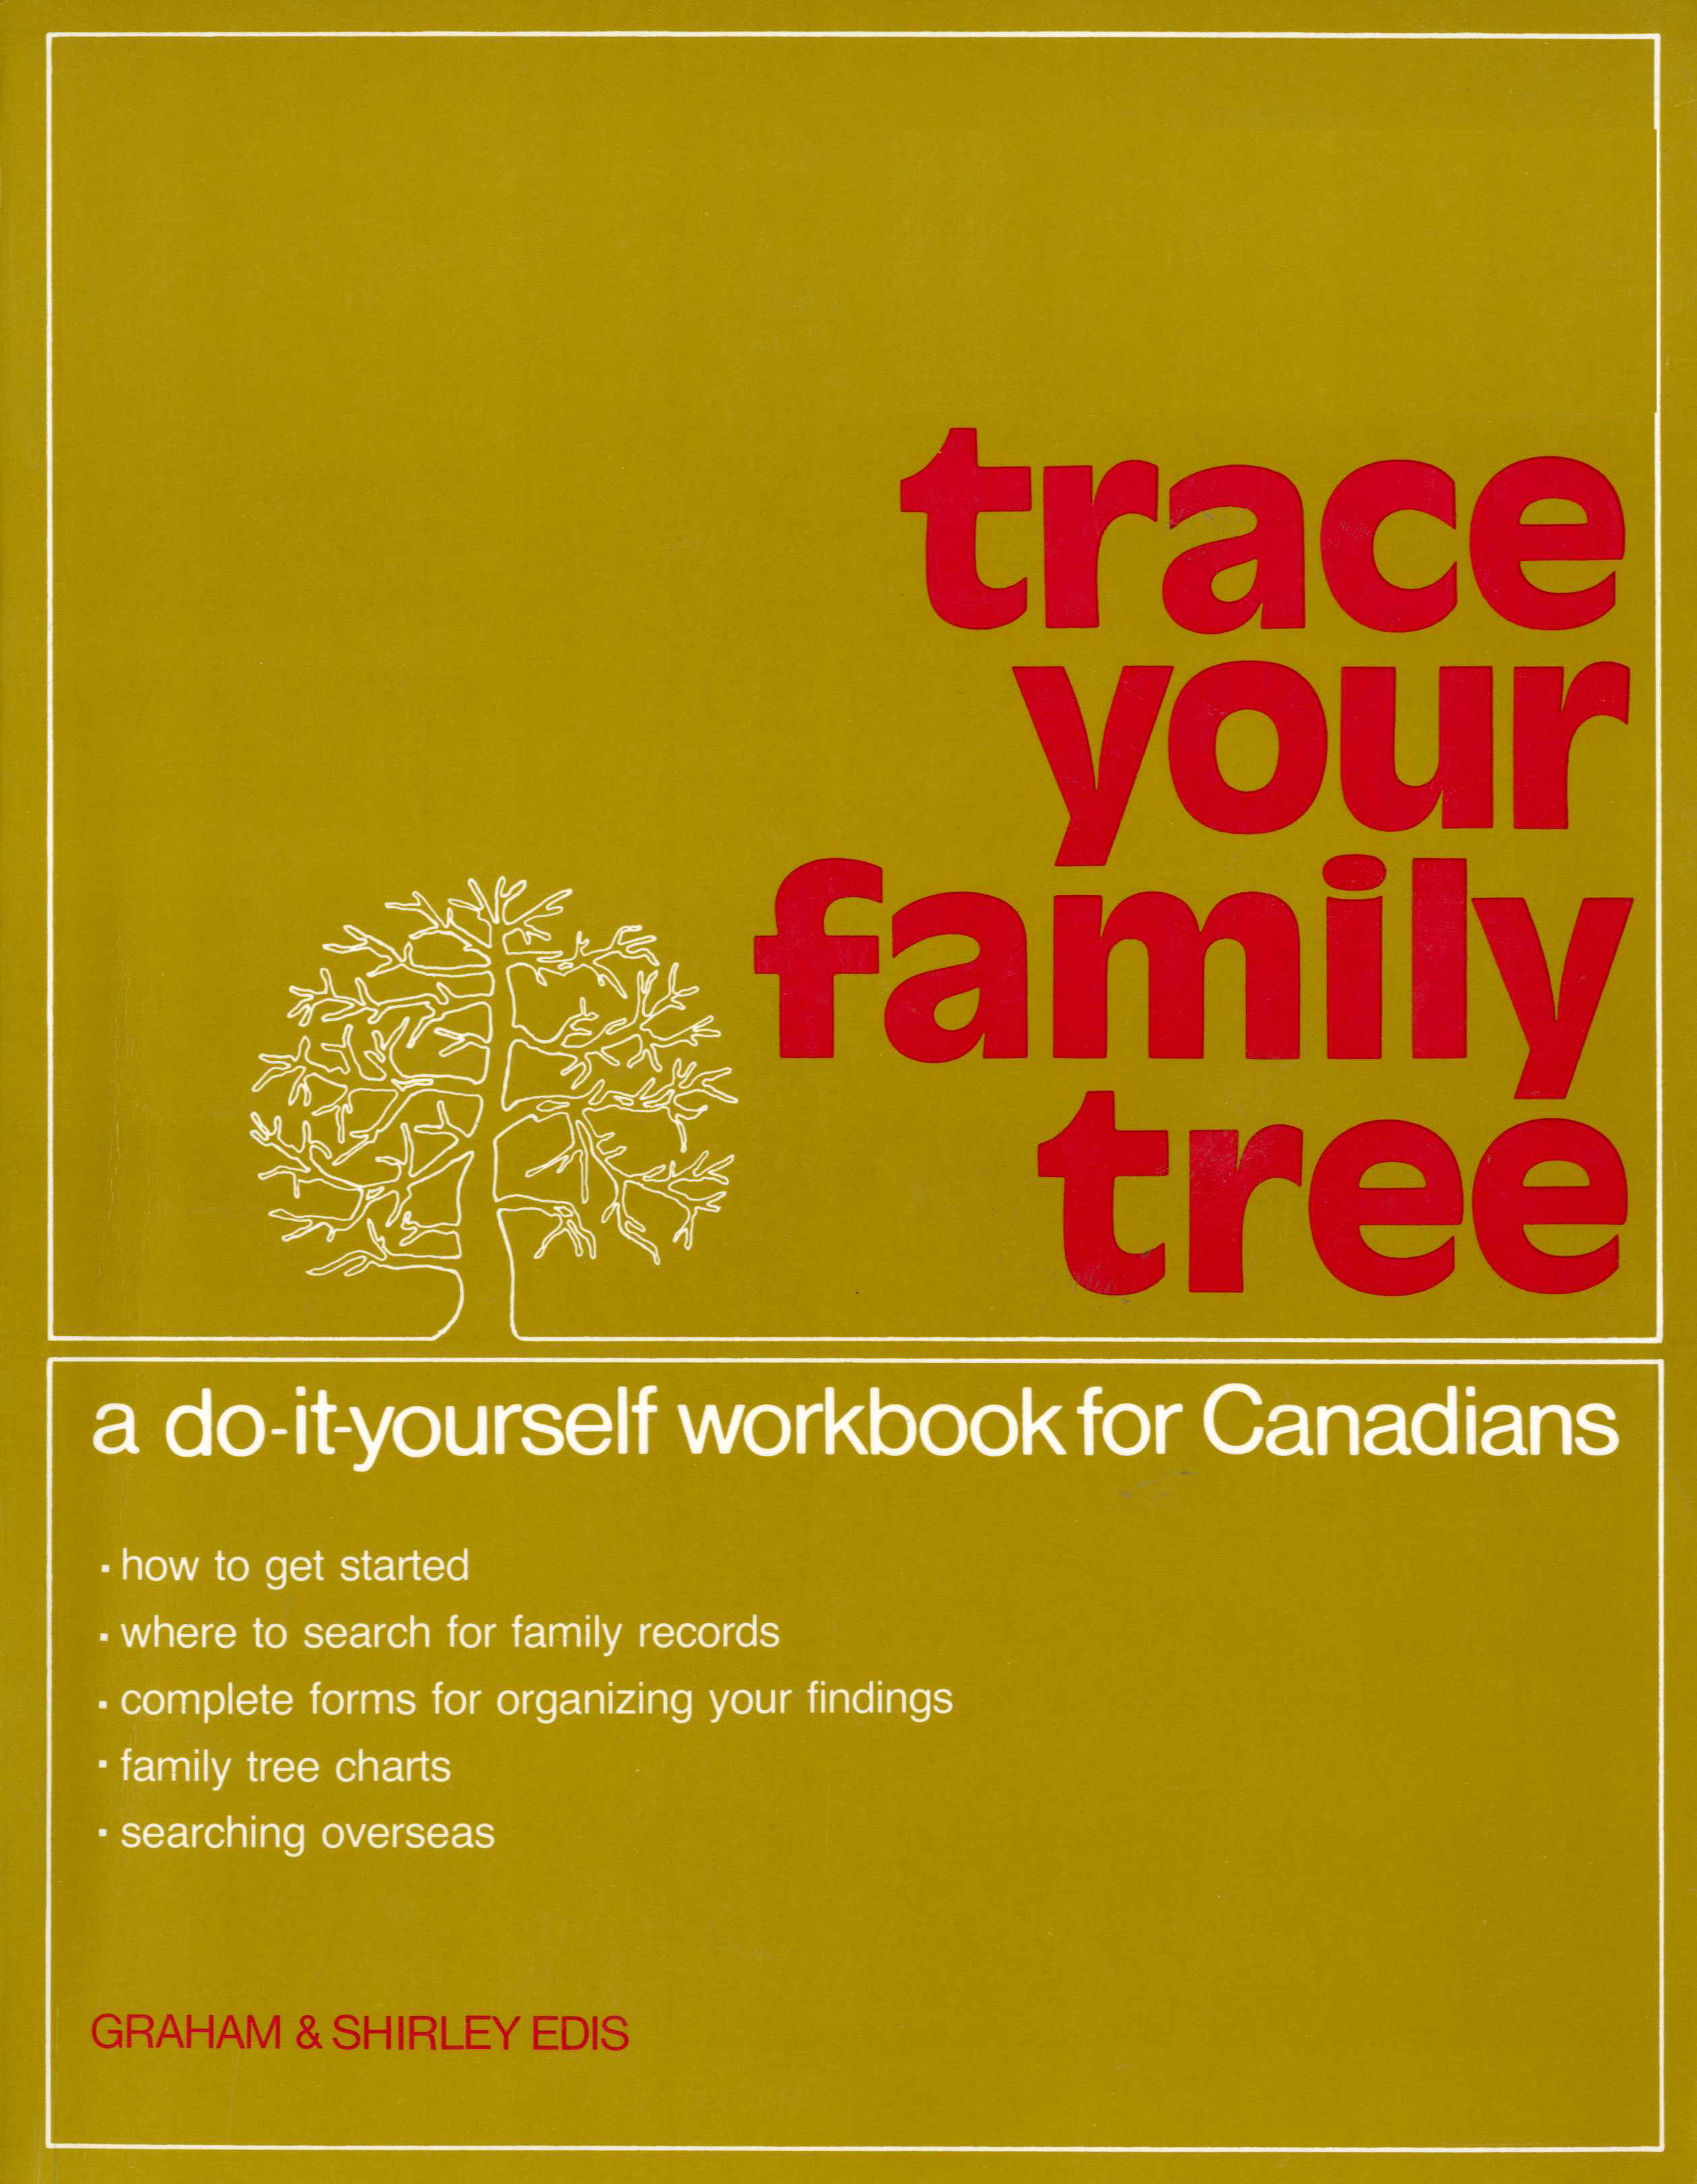 Trace your Family Tree: A Do-It-Yourself Workbook for Canadians Image